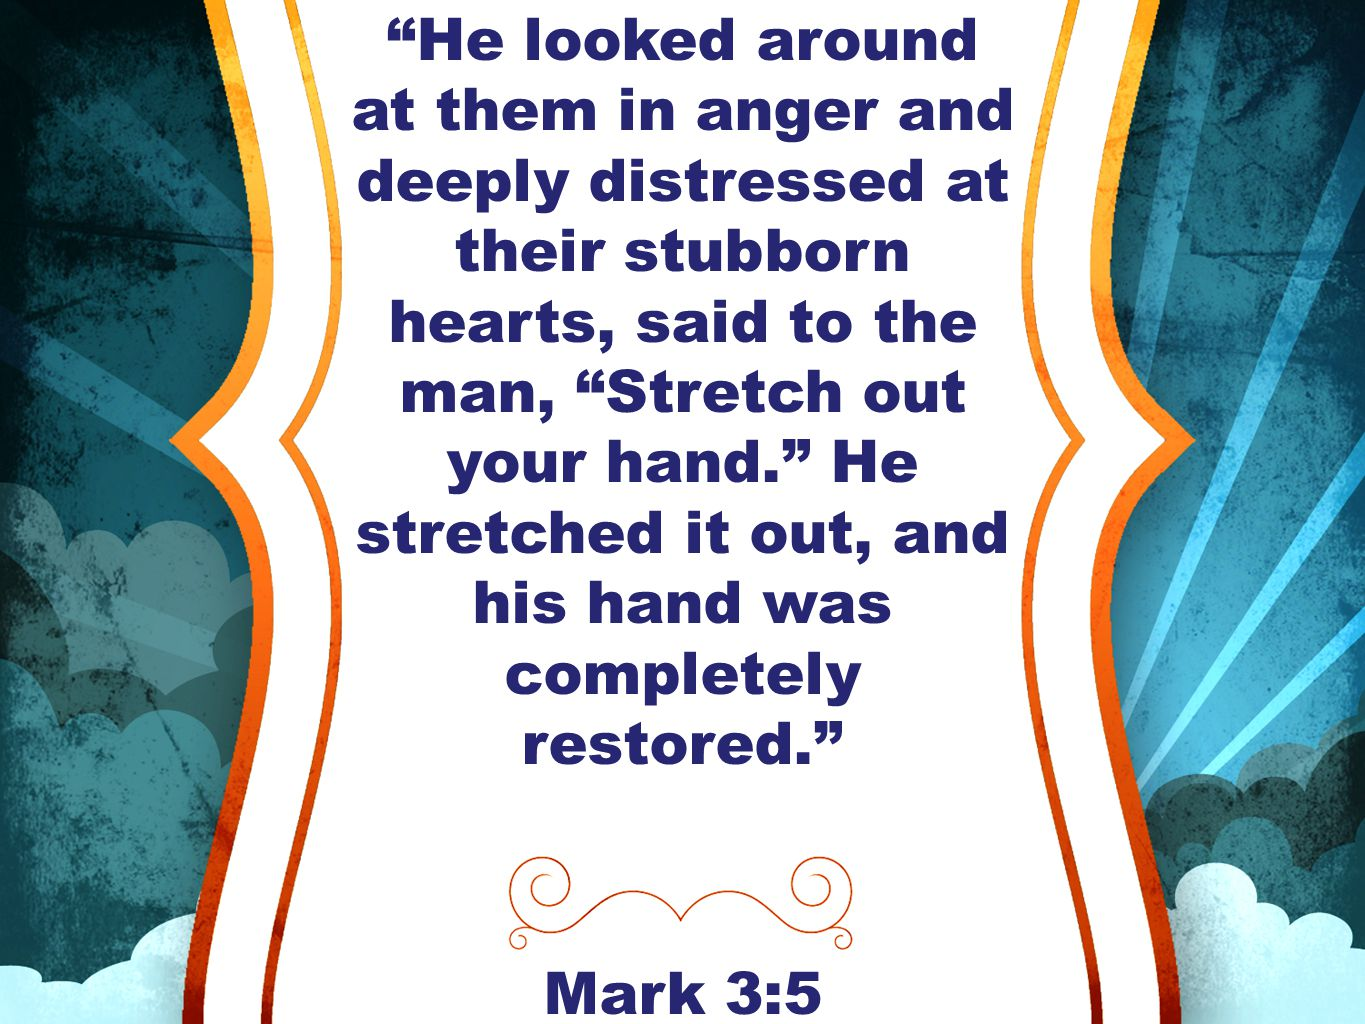 He looked around at them in anger and deeply distressed at their stubborn hearts, said to the man, Stretch out your hand. He stretched it out, and his hand was completely restored. Mark 3:5